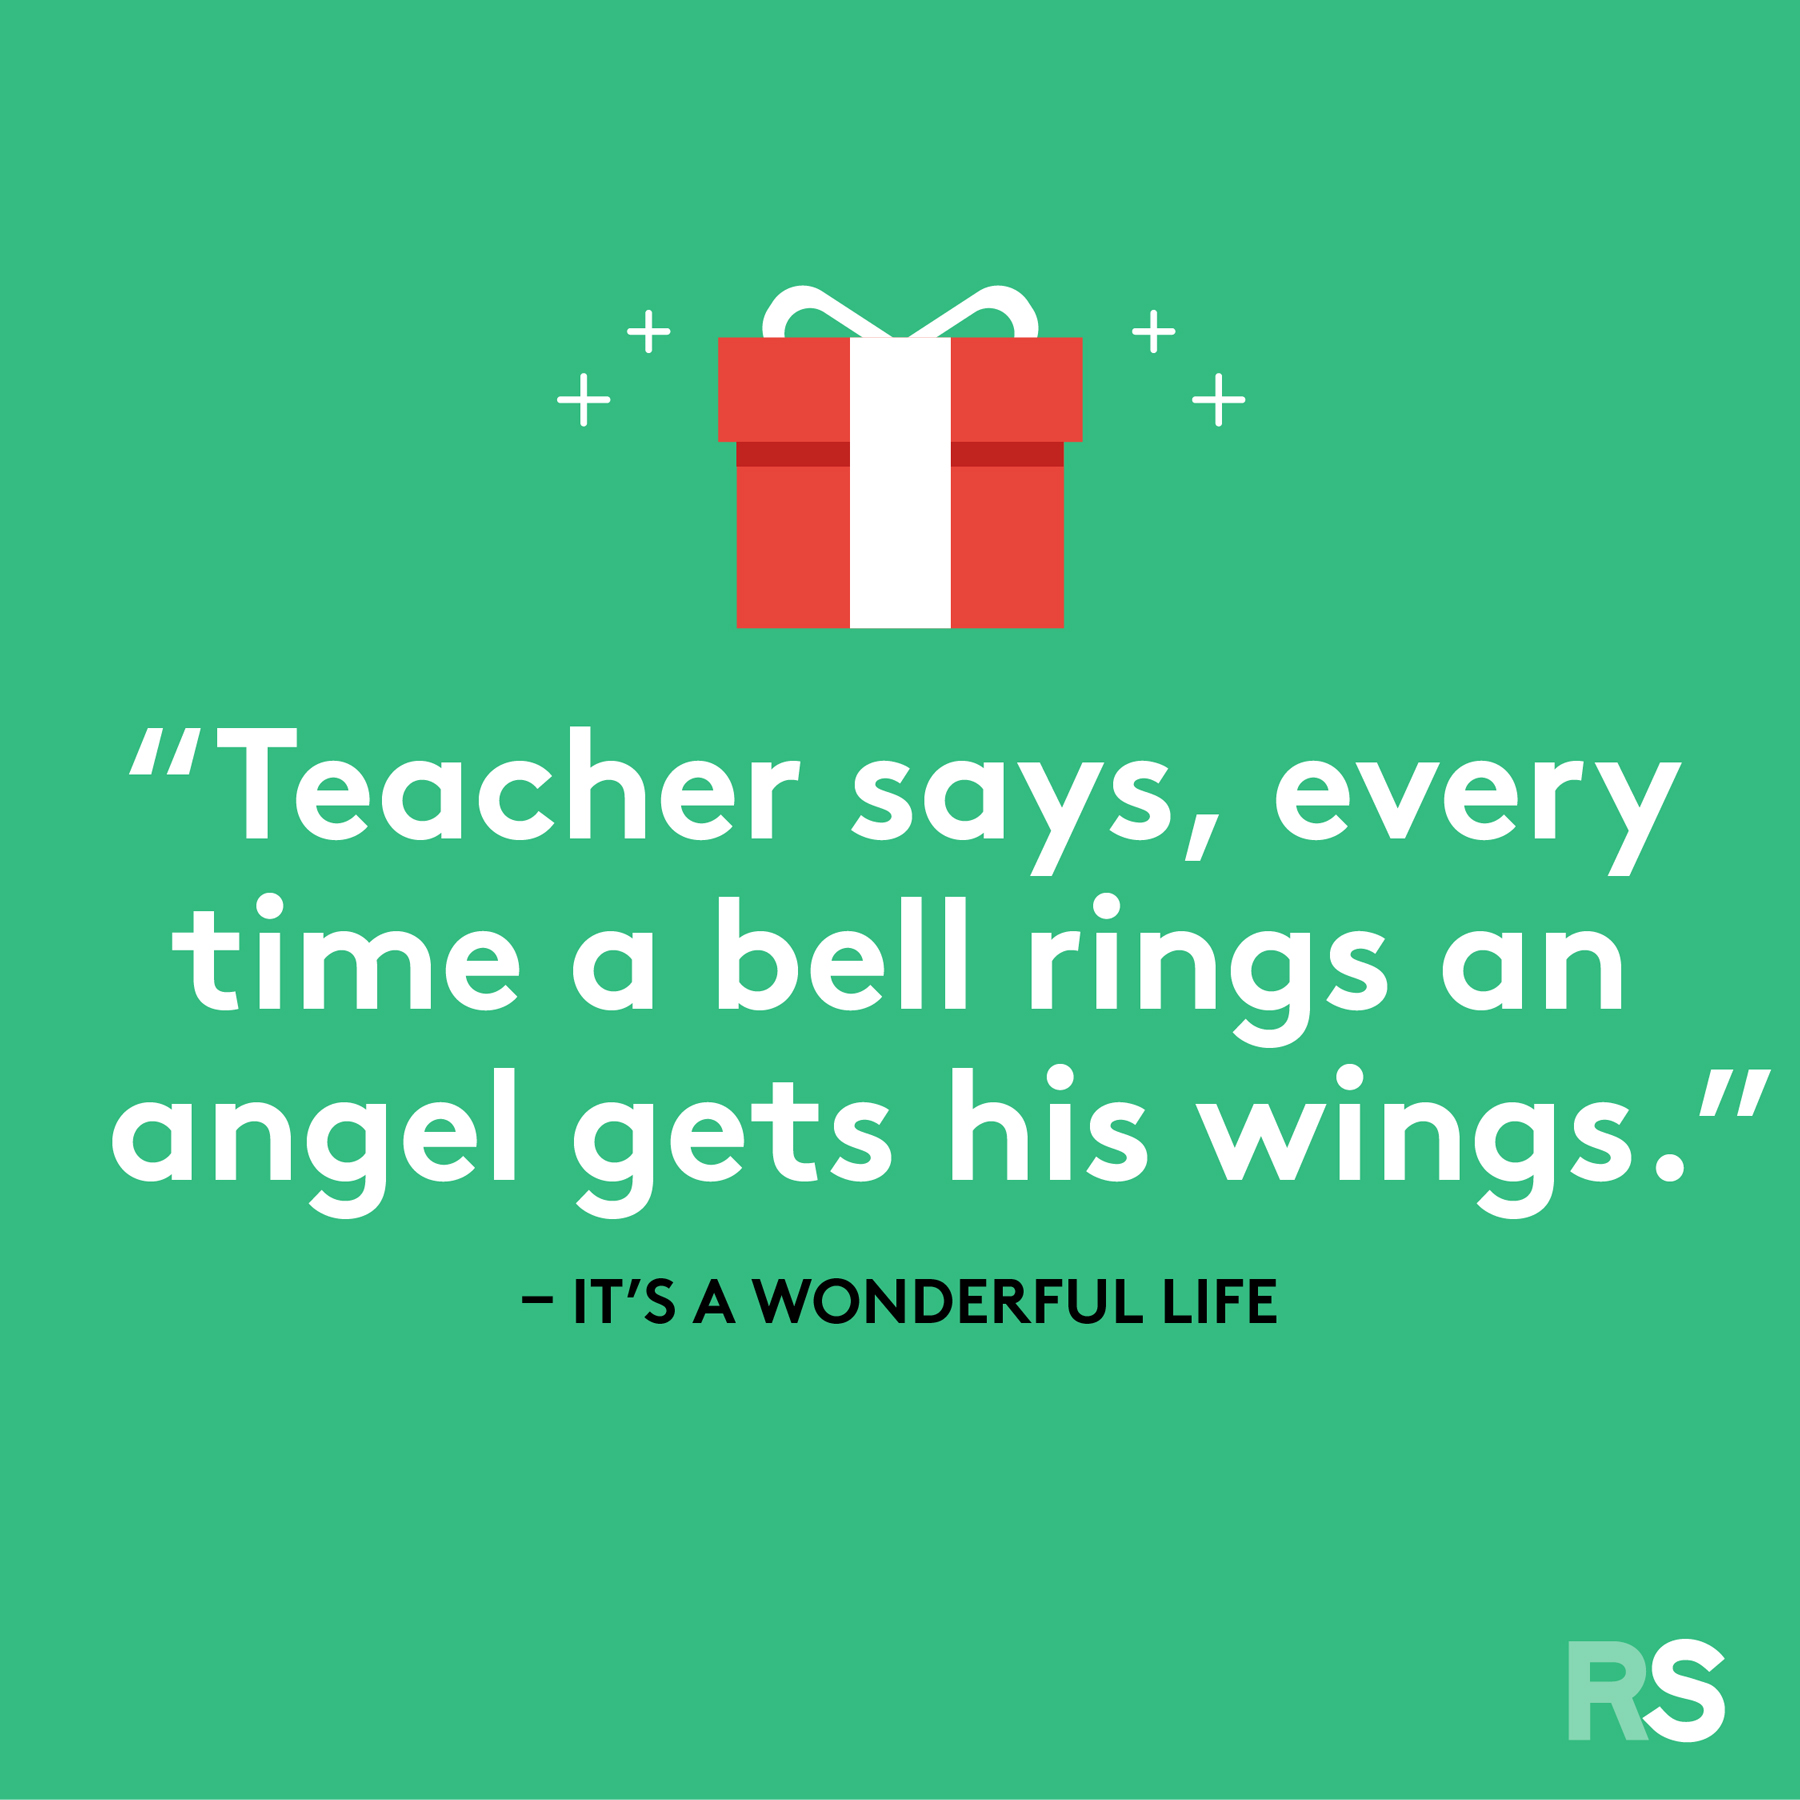 Best Christmas quotes - It's a Wonderful Life